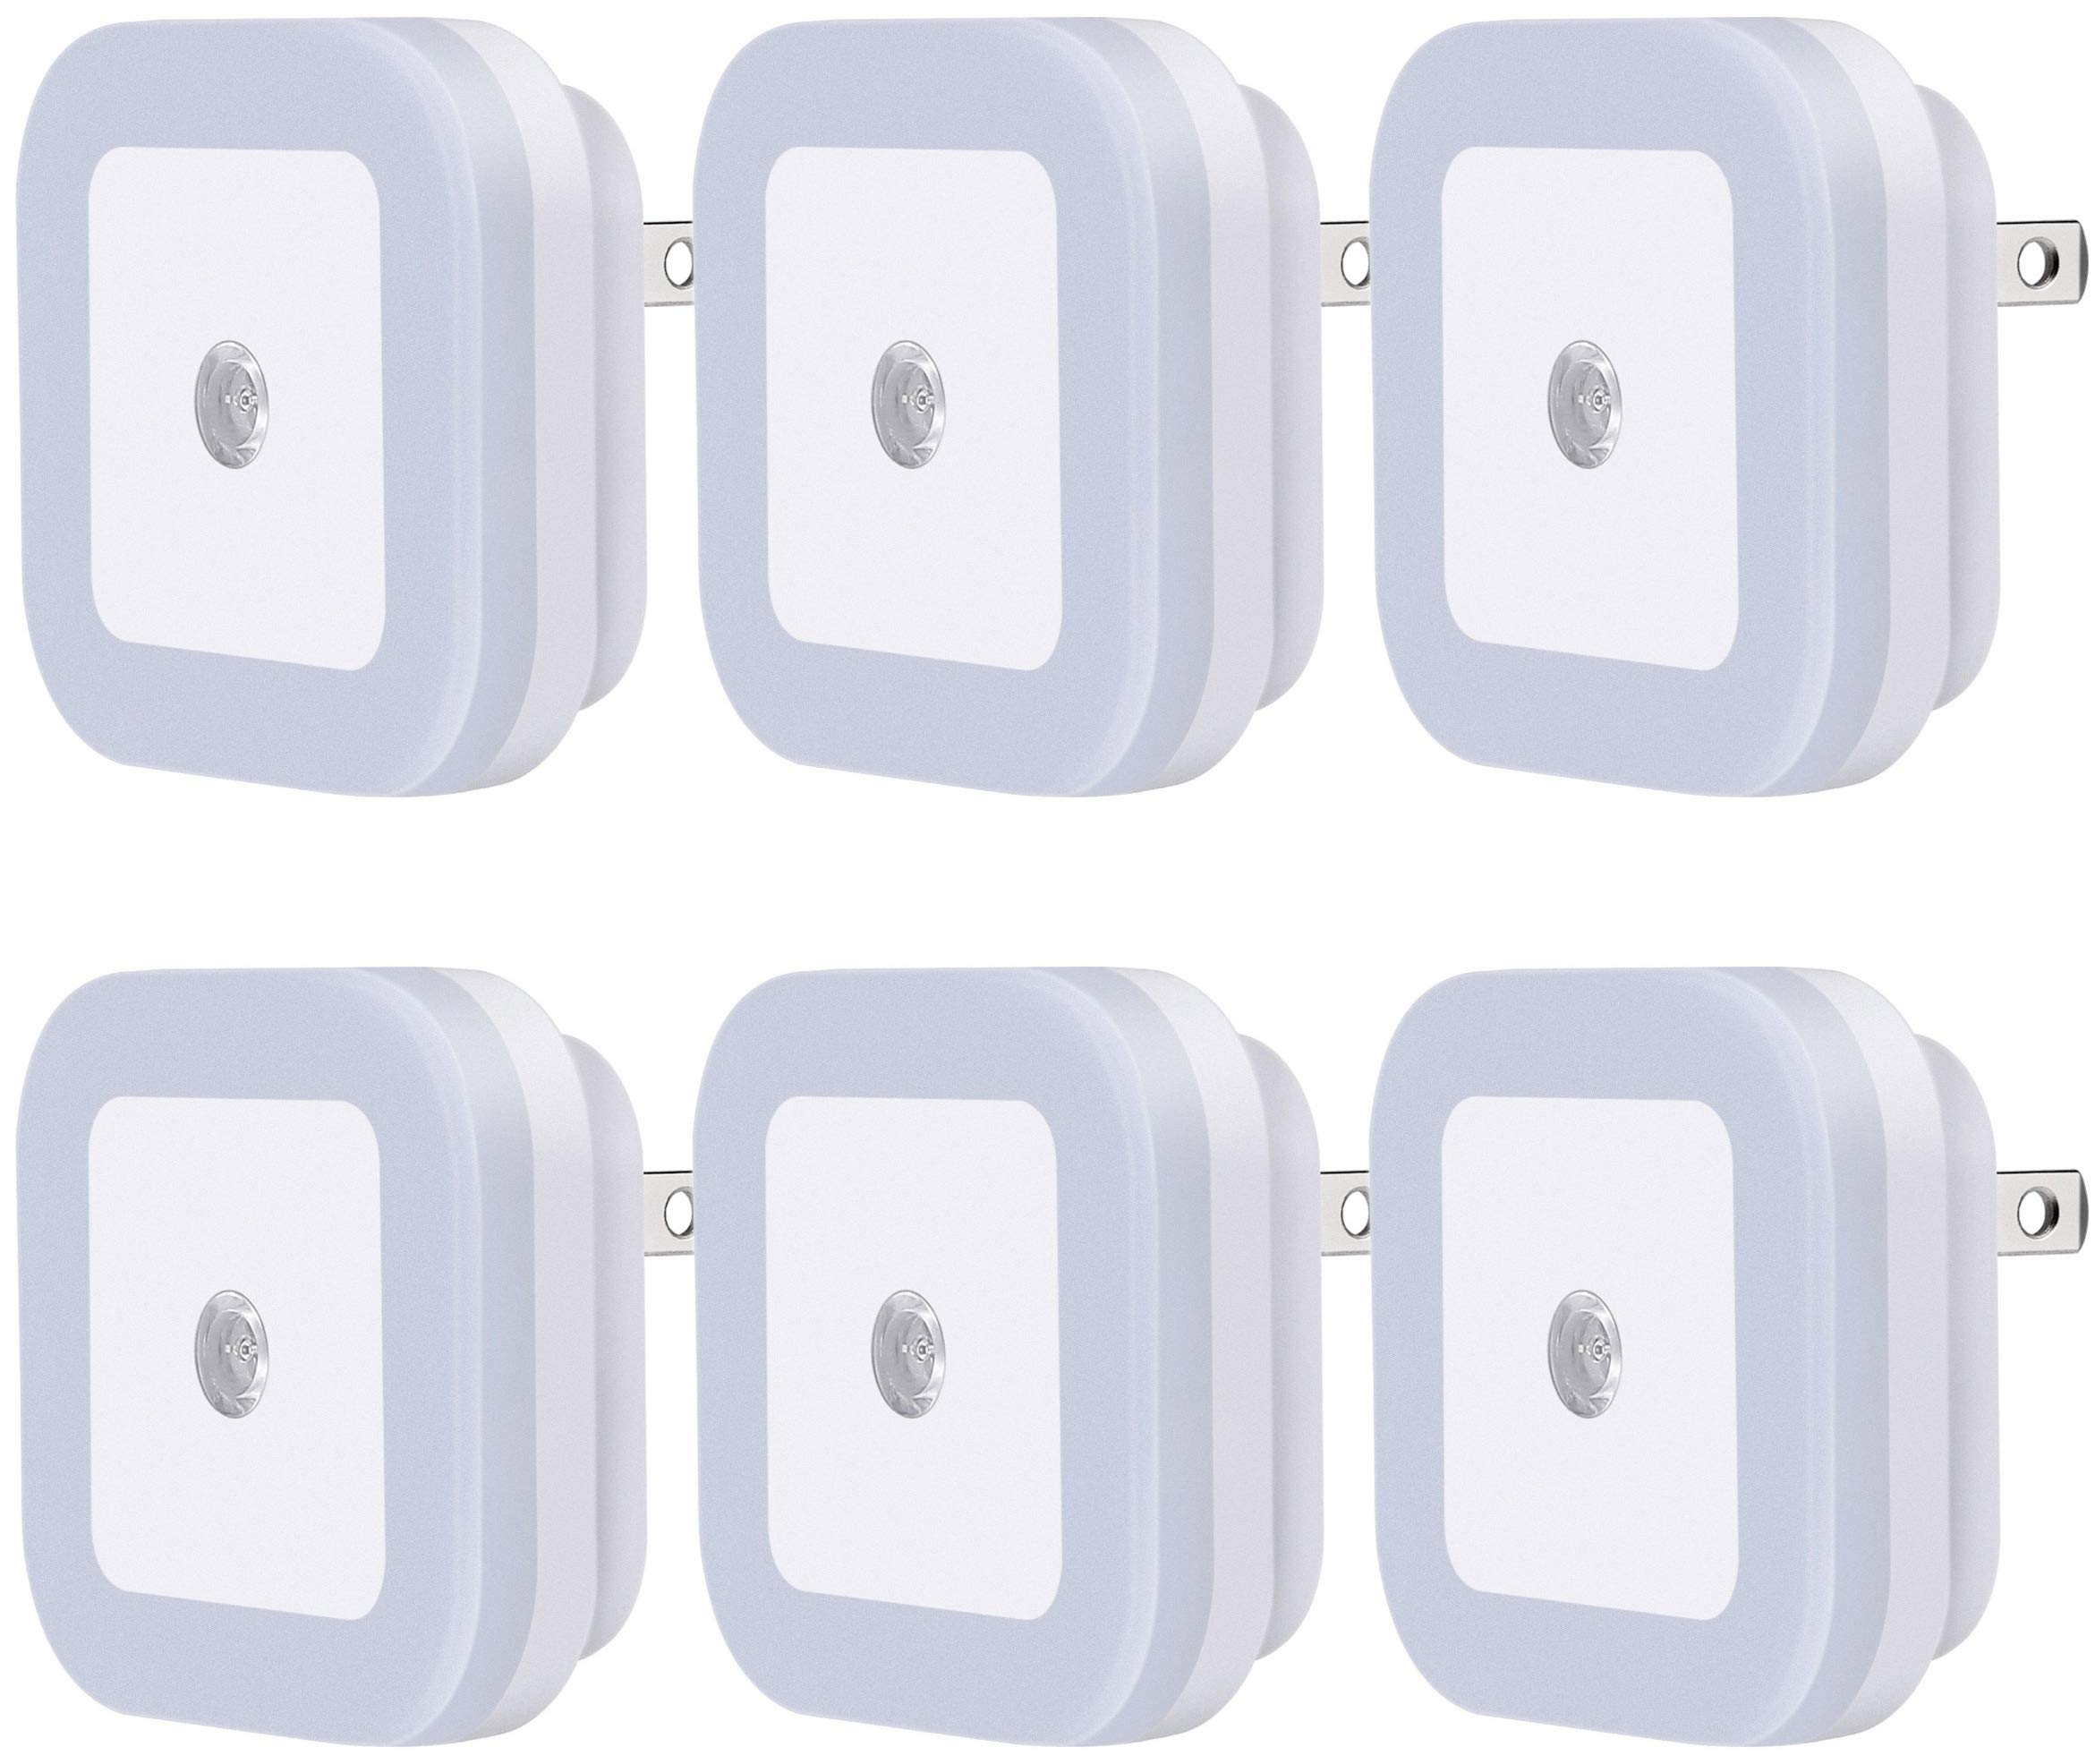 Sycees SC01 Plug-in LED Night Light Lamp with Dusk to Dawn Sensor for Hallway, Kitchen, Bathroom, Bedroom, Stairs, Daylight White, 6-Pack